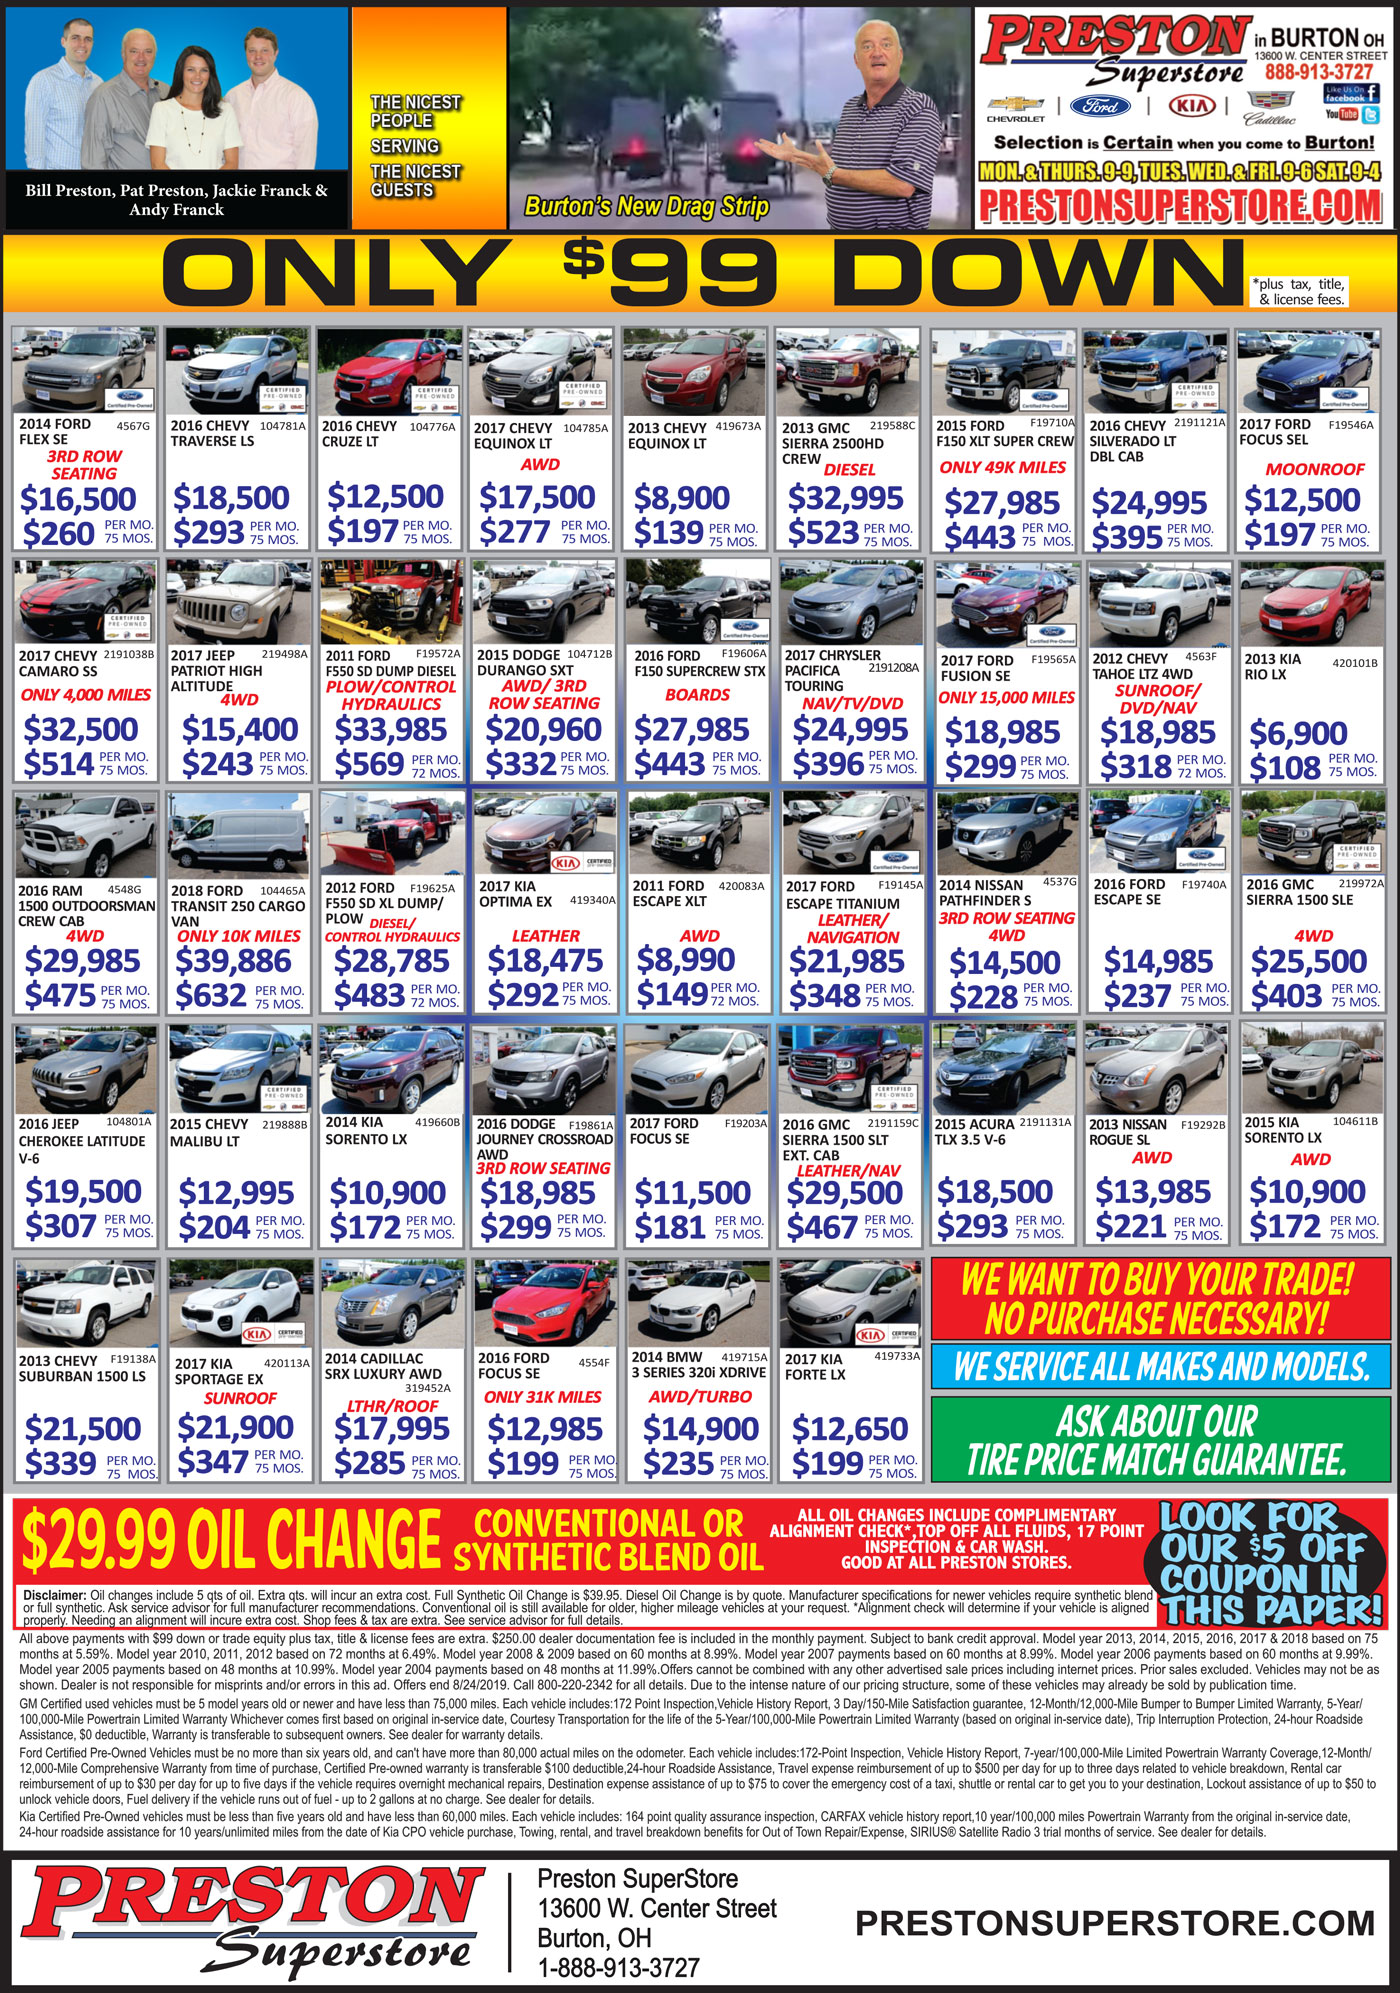 Weekly ad full of used car deals and new car specials in Burton Ohio near Chardon in Cleveland Ohio